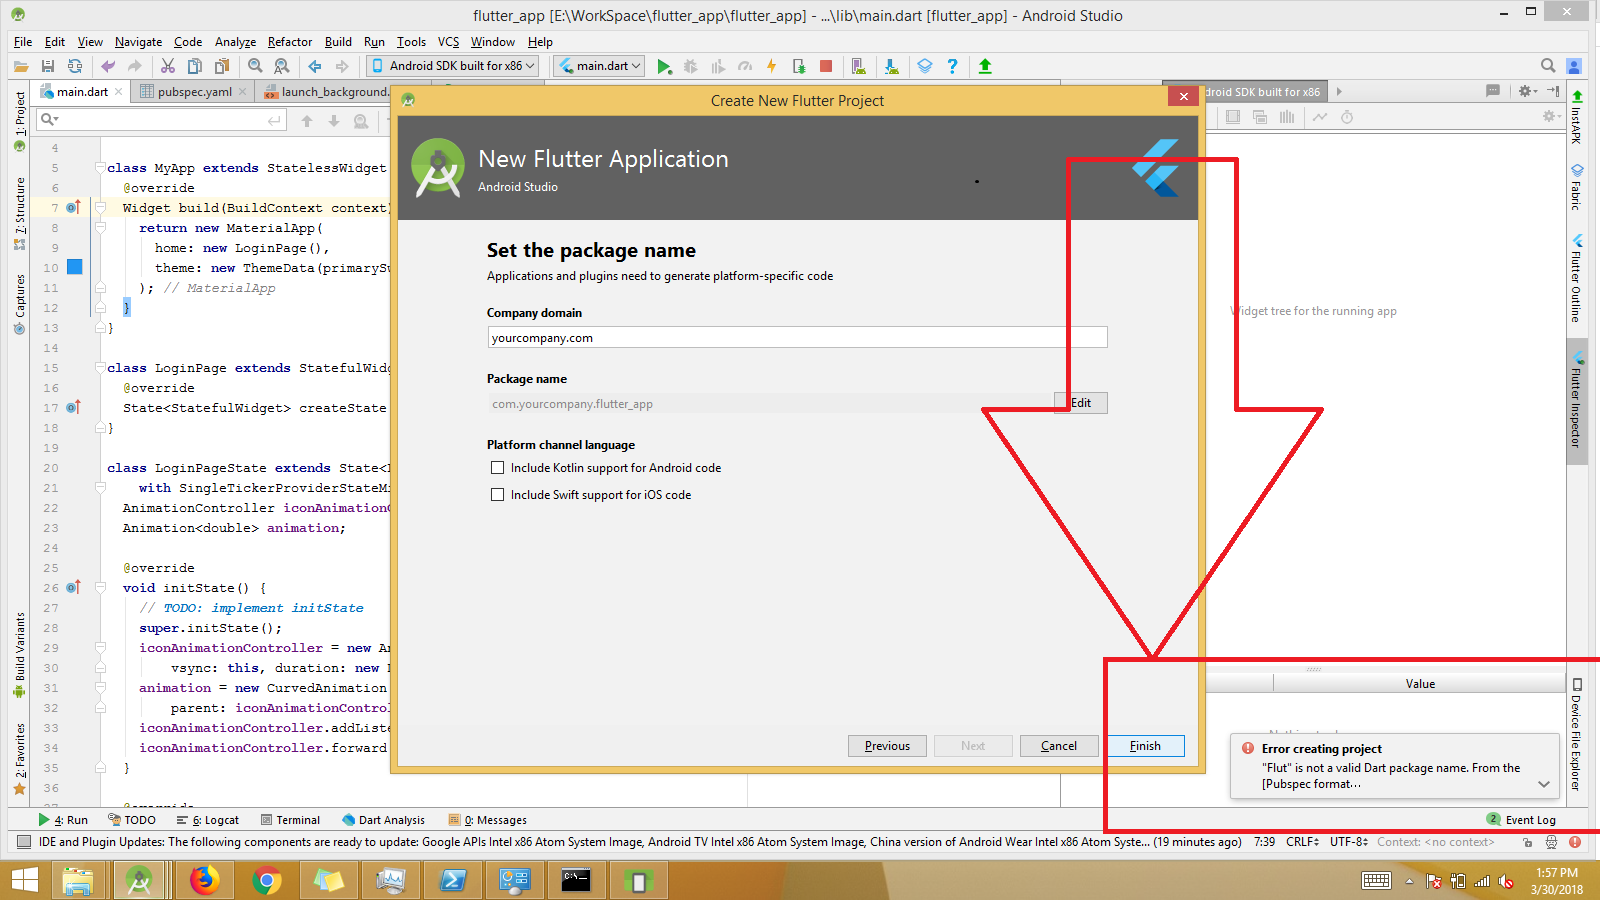 Project Location is misleading in project creation dialog on